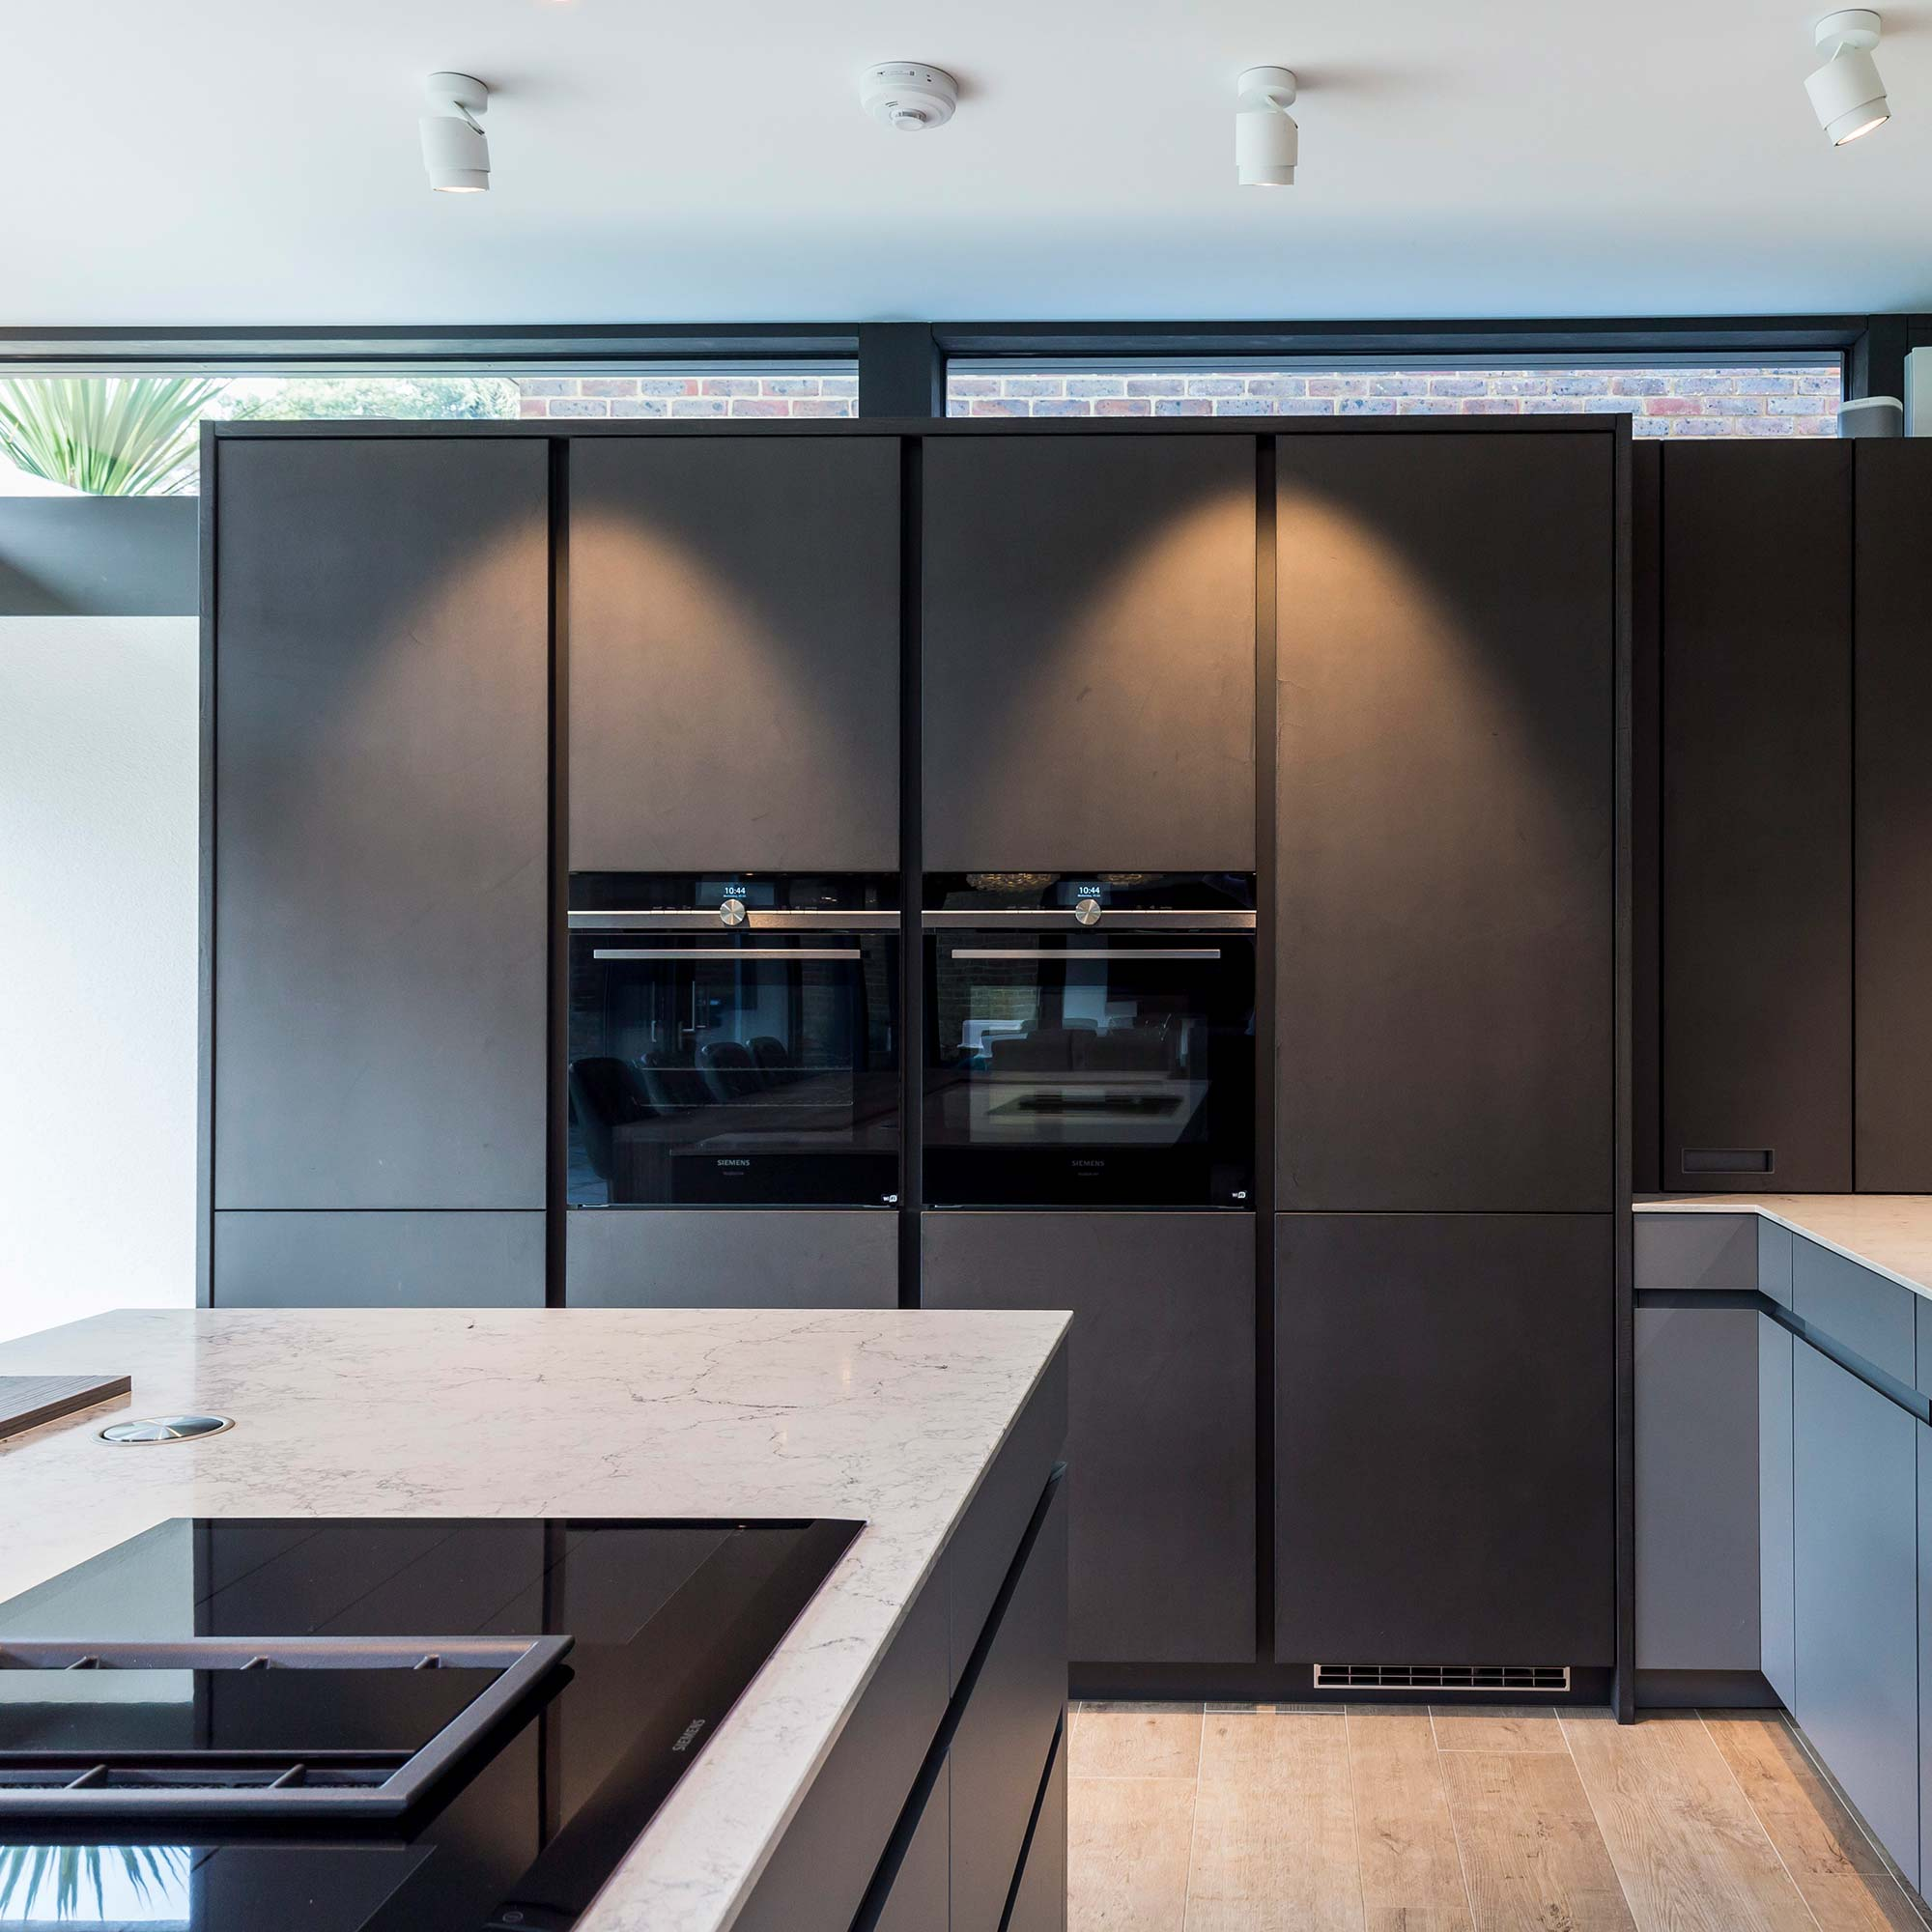 Vertical designer kitchen handle systems from Hubble